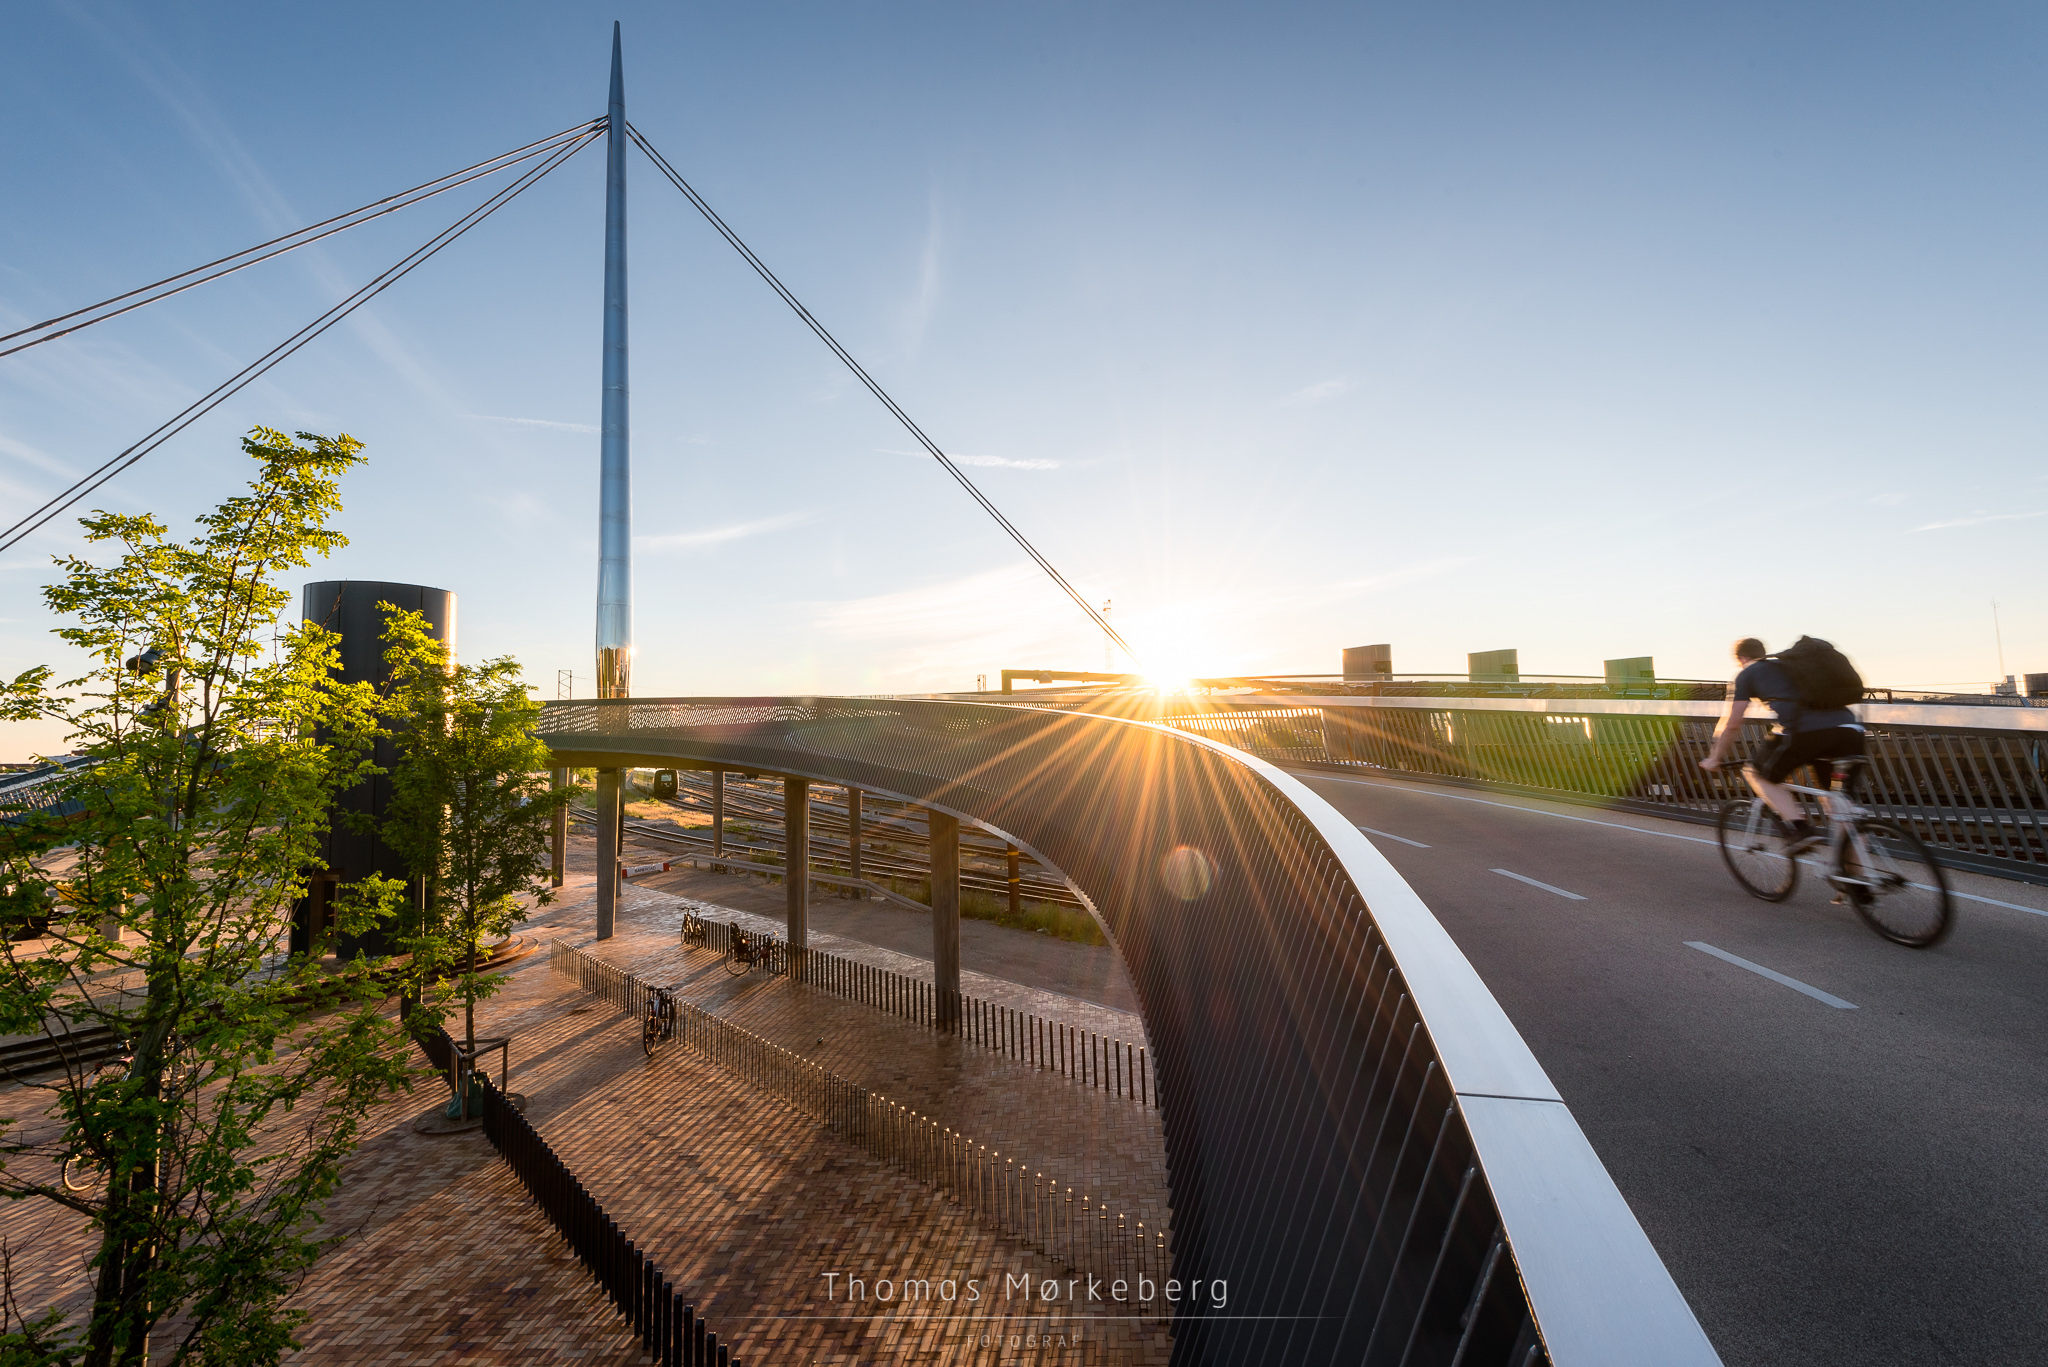 Cyclist going over the City Bridge (Byens bro) in Odense, Denmar